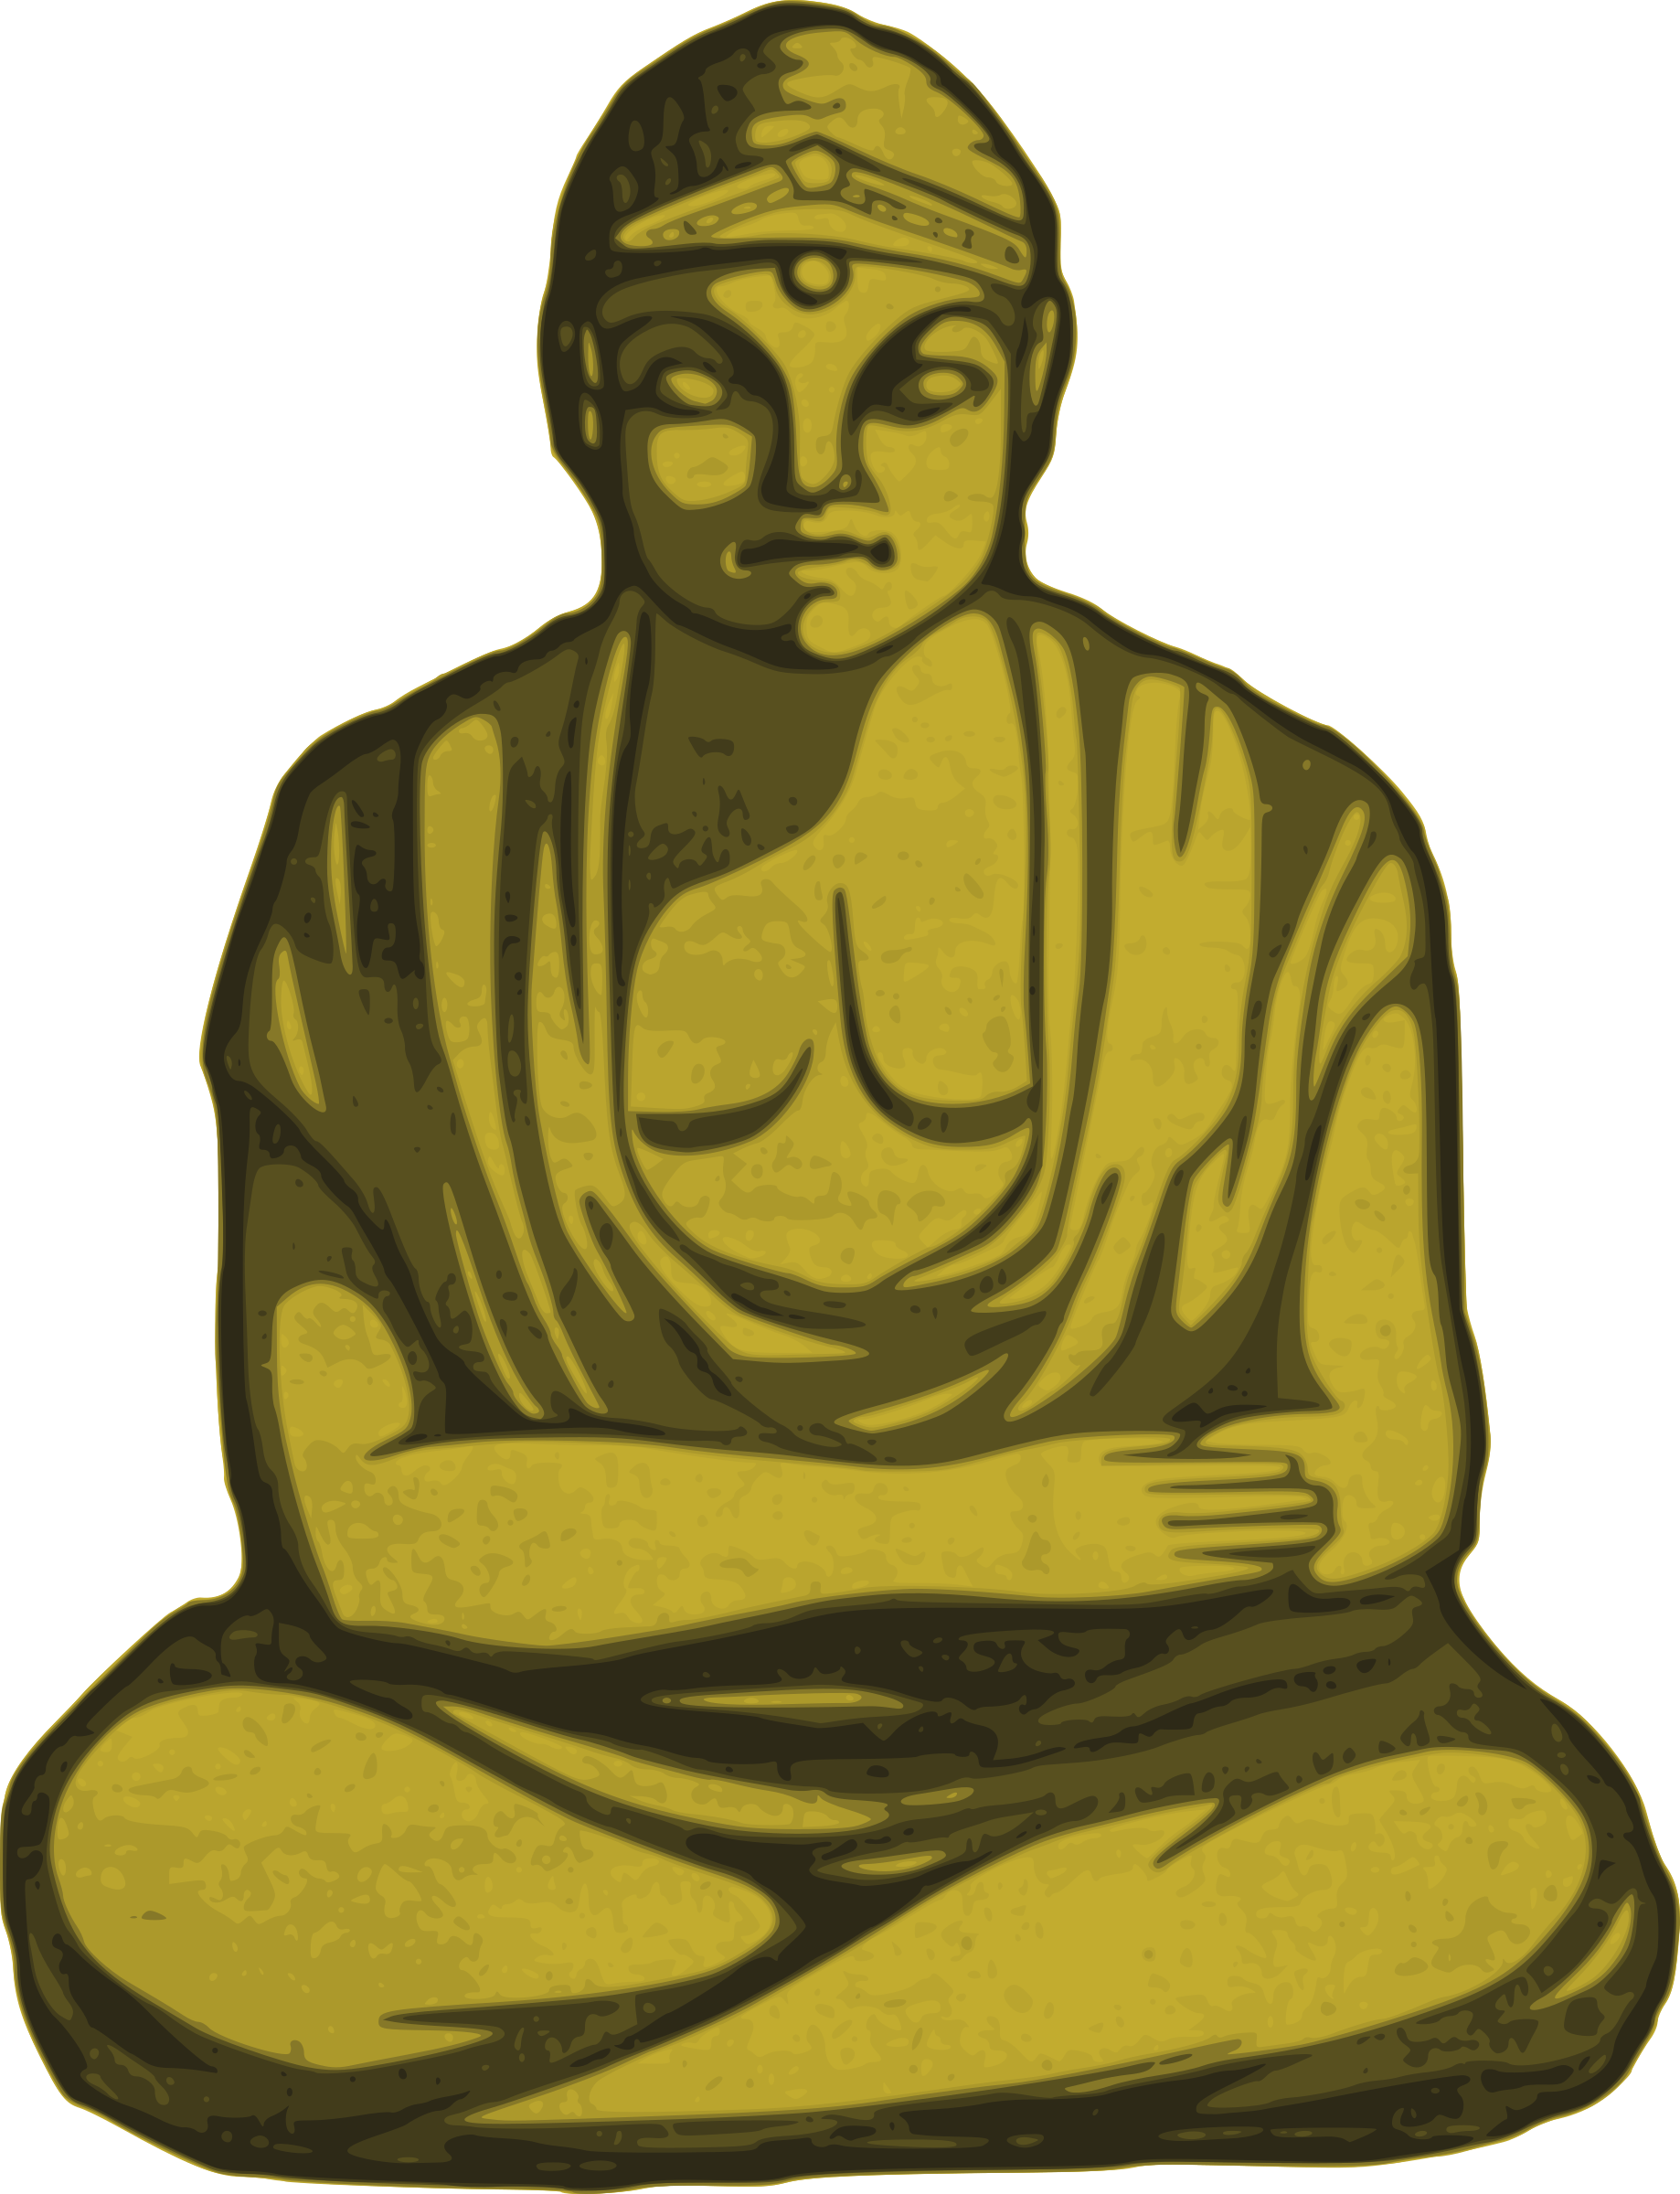 Golden Buddha by j4p4n